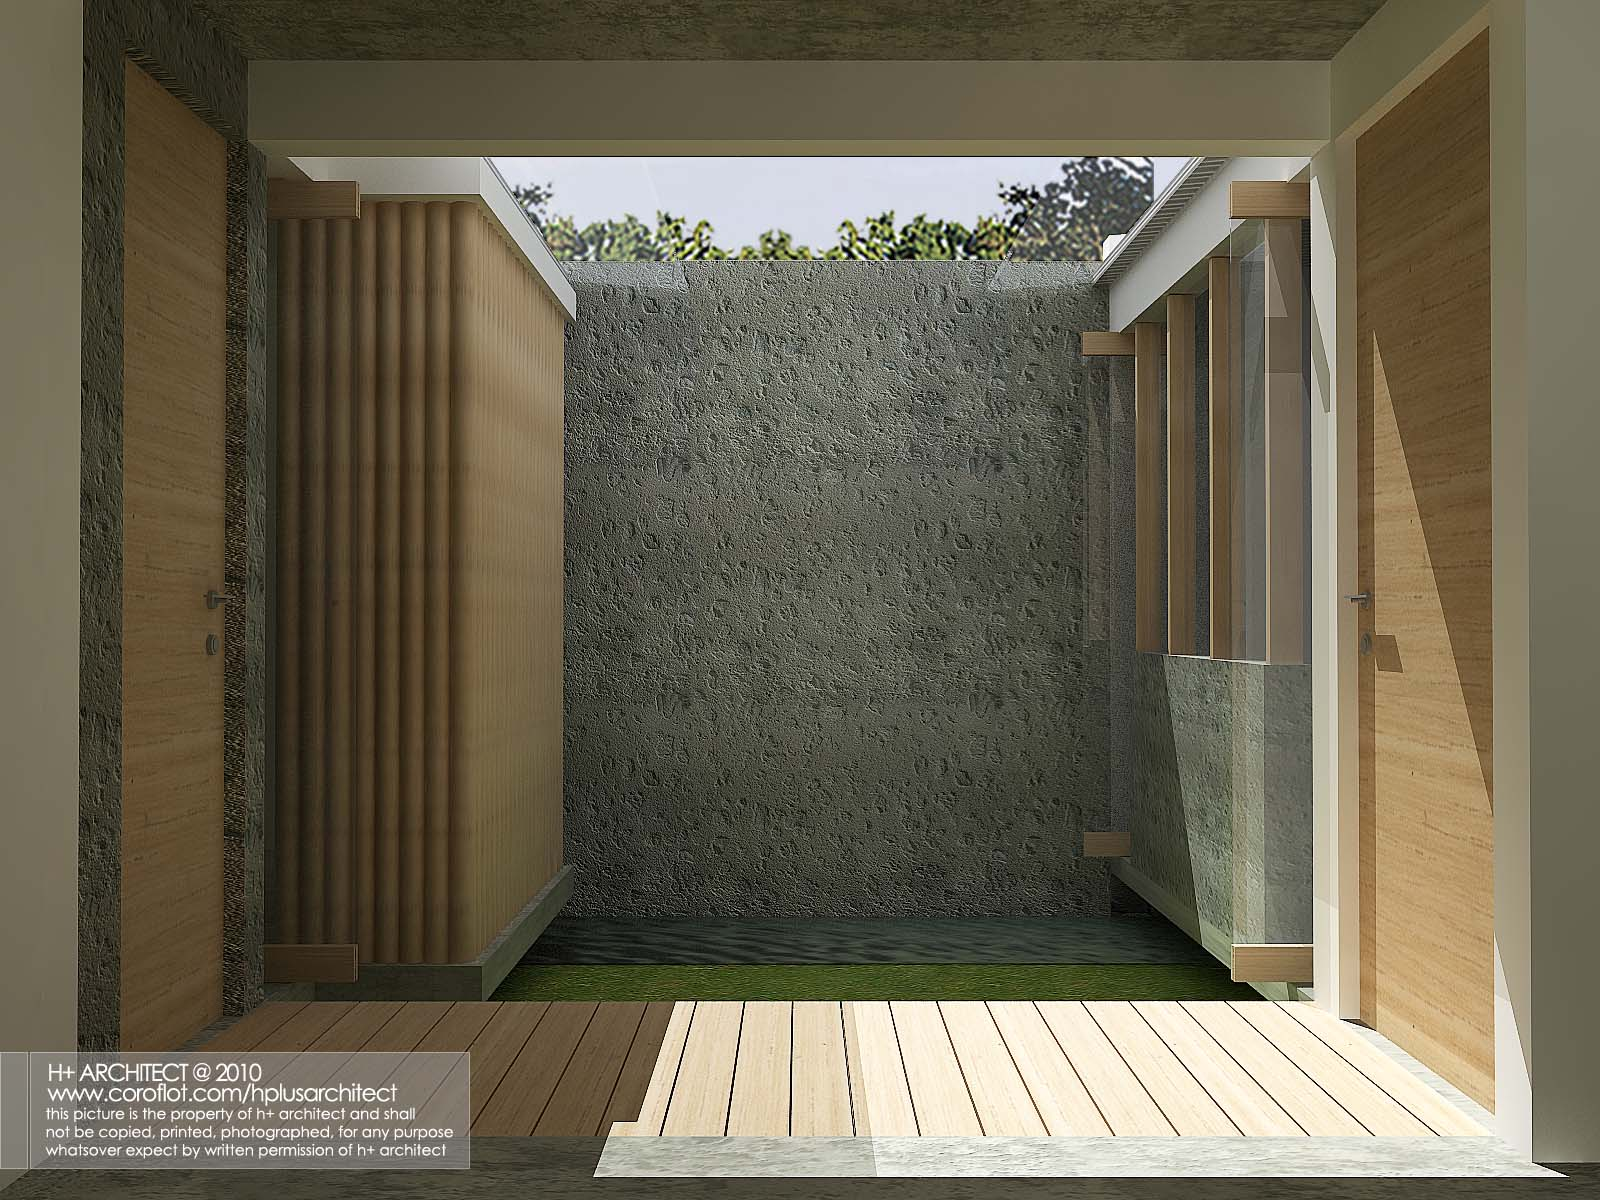 competition rumah mungil hijau by yudho patrianto at